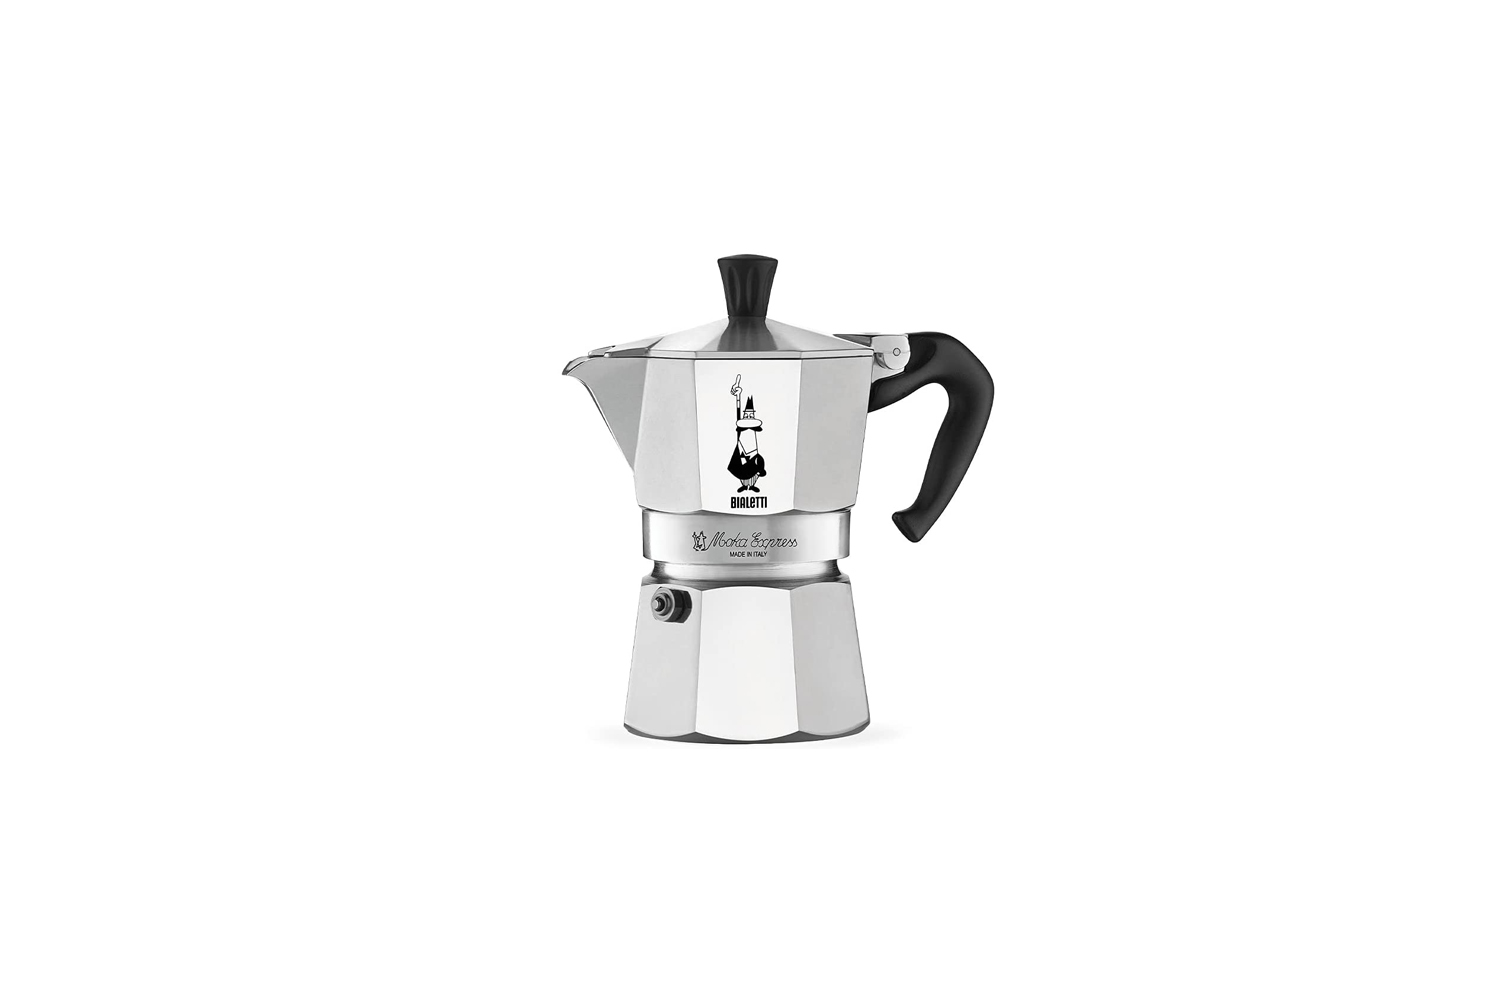 the industry workhorse: the bialetti moka express stovetop coffee maker was inv 10